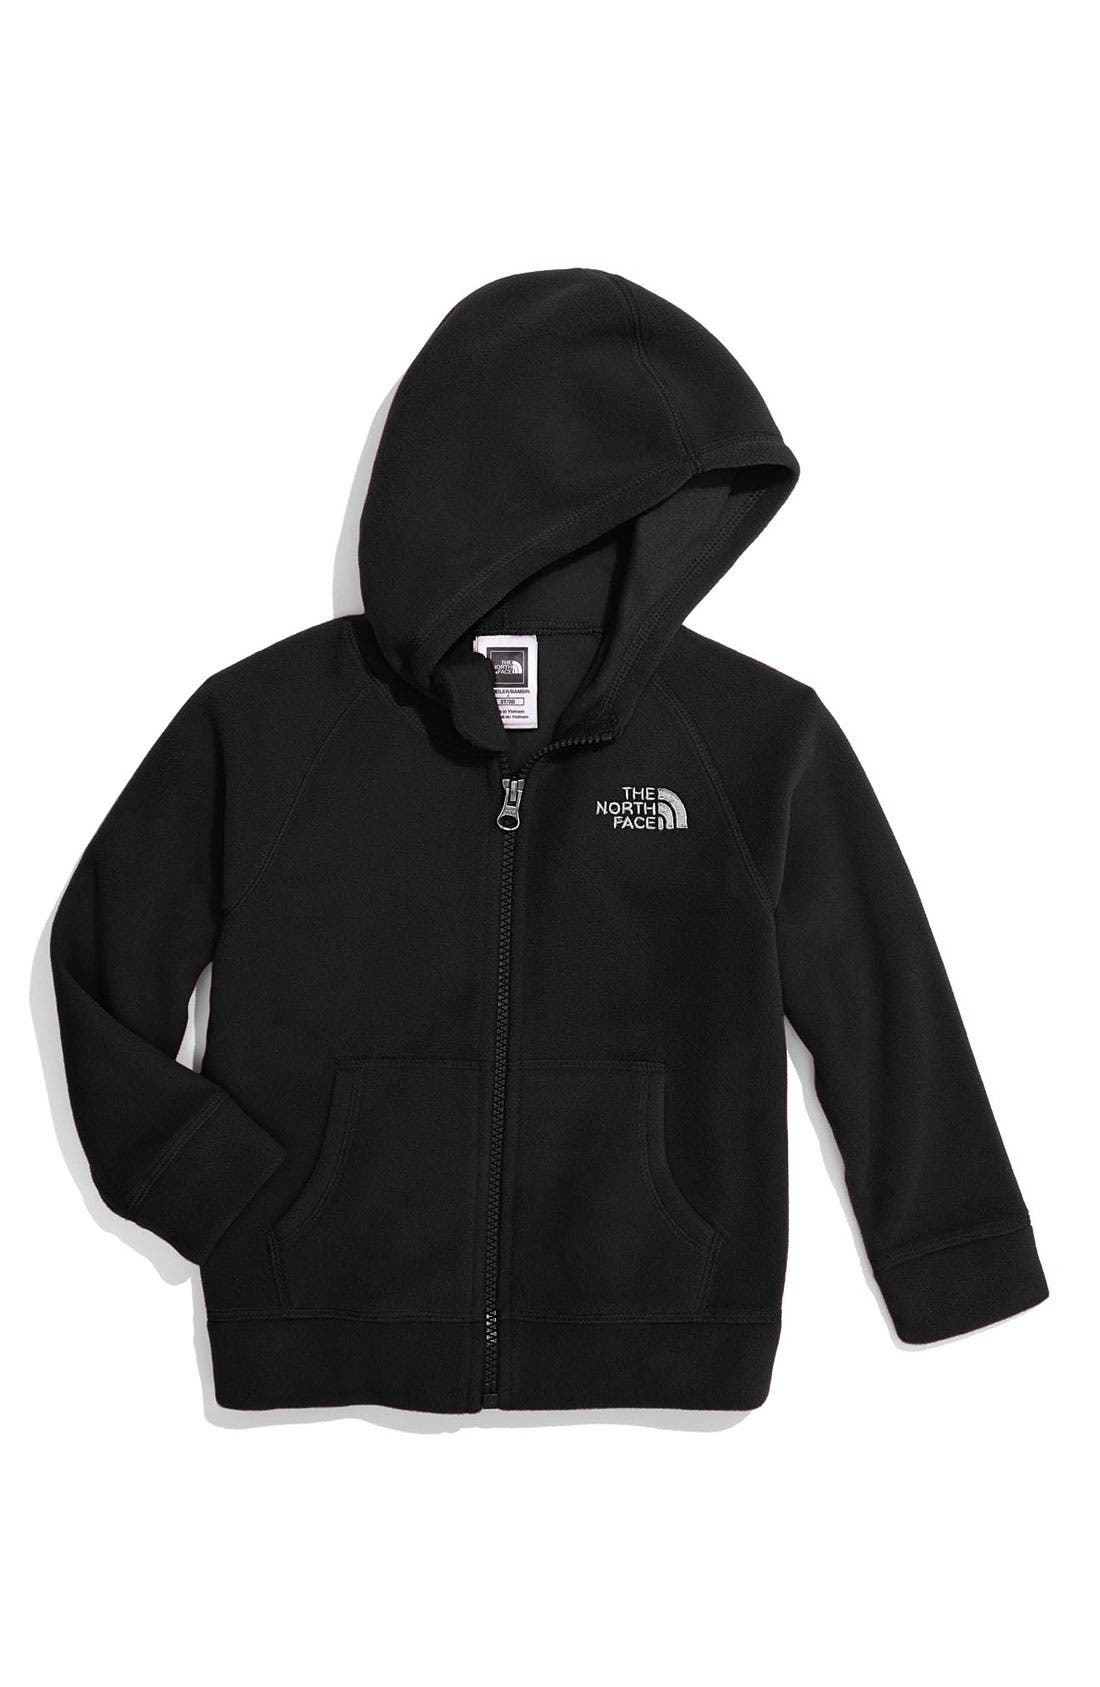 Main Image - The North Face 'Glacier' Fleece Jacket (Toddler)